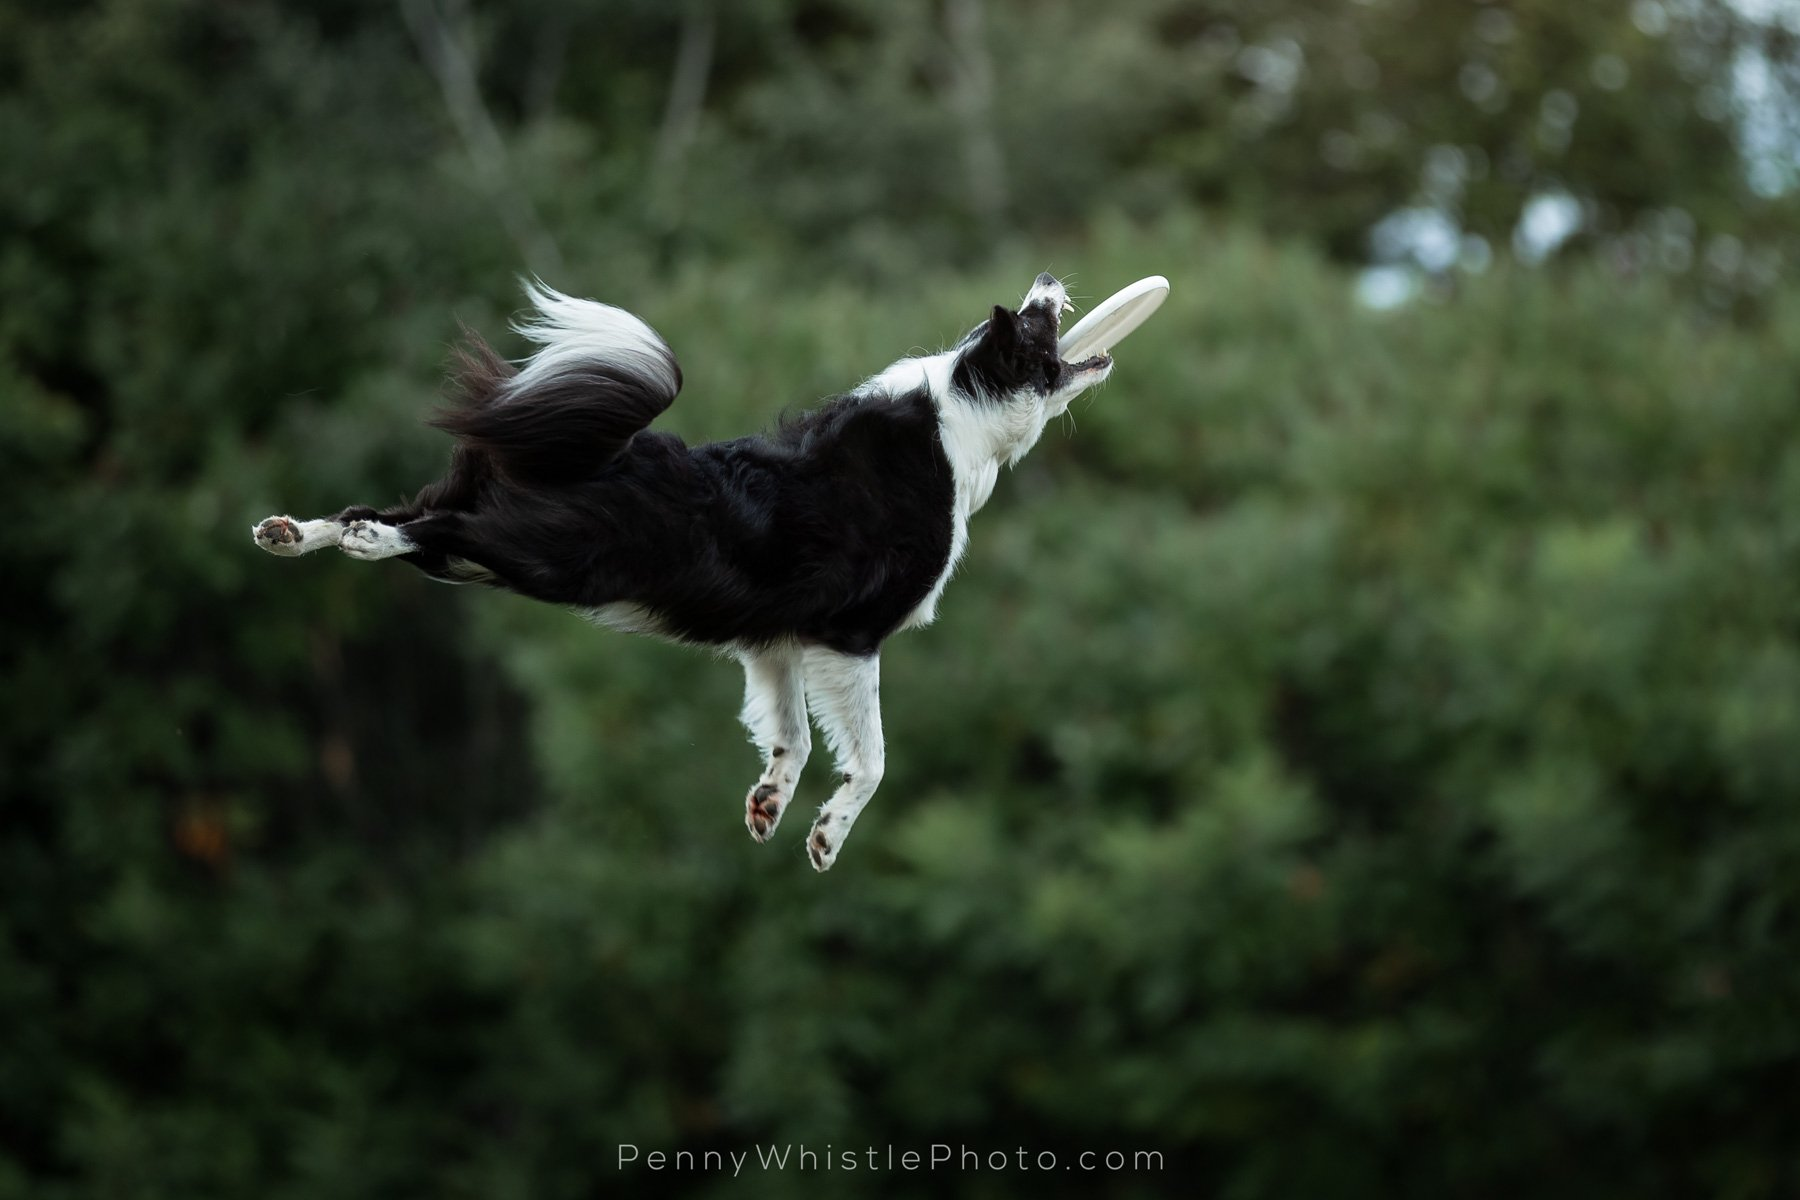 Dog Action Photography Miss dig | alpena power company. dog action photography